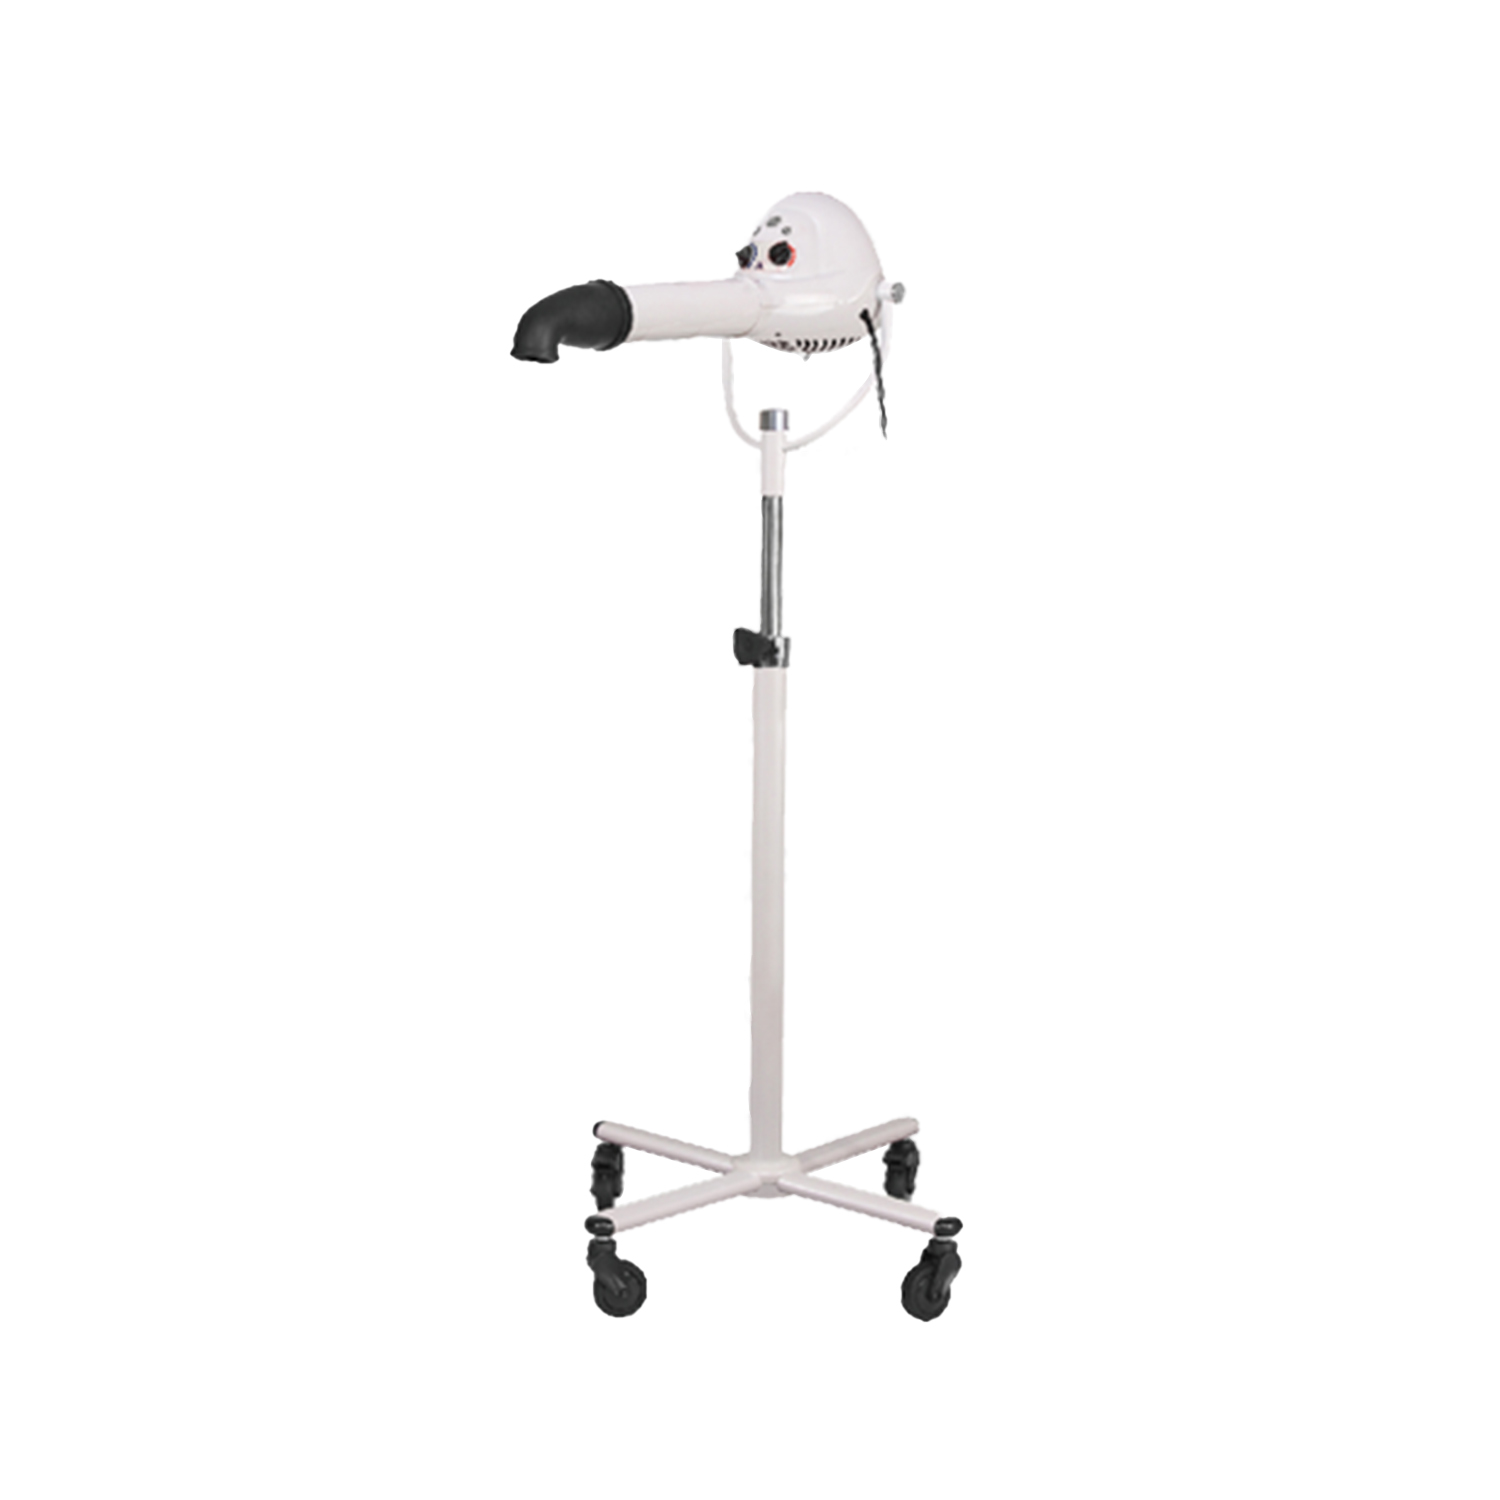 Grooming Stand Dryer